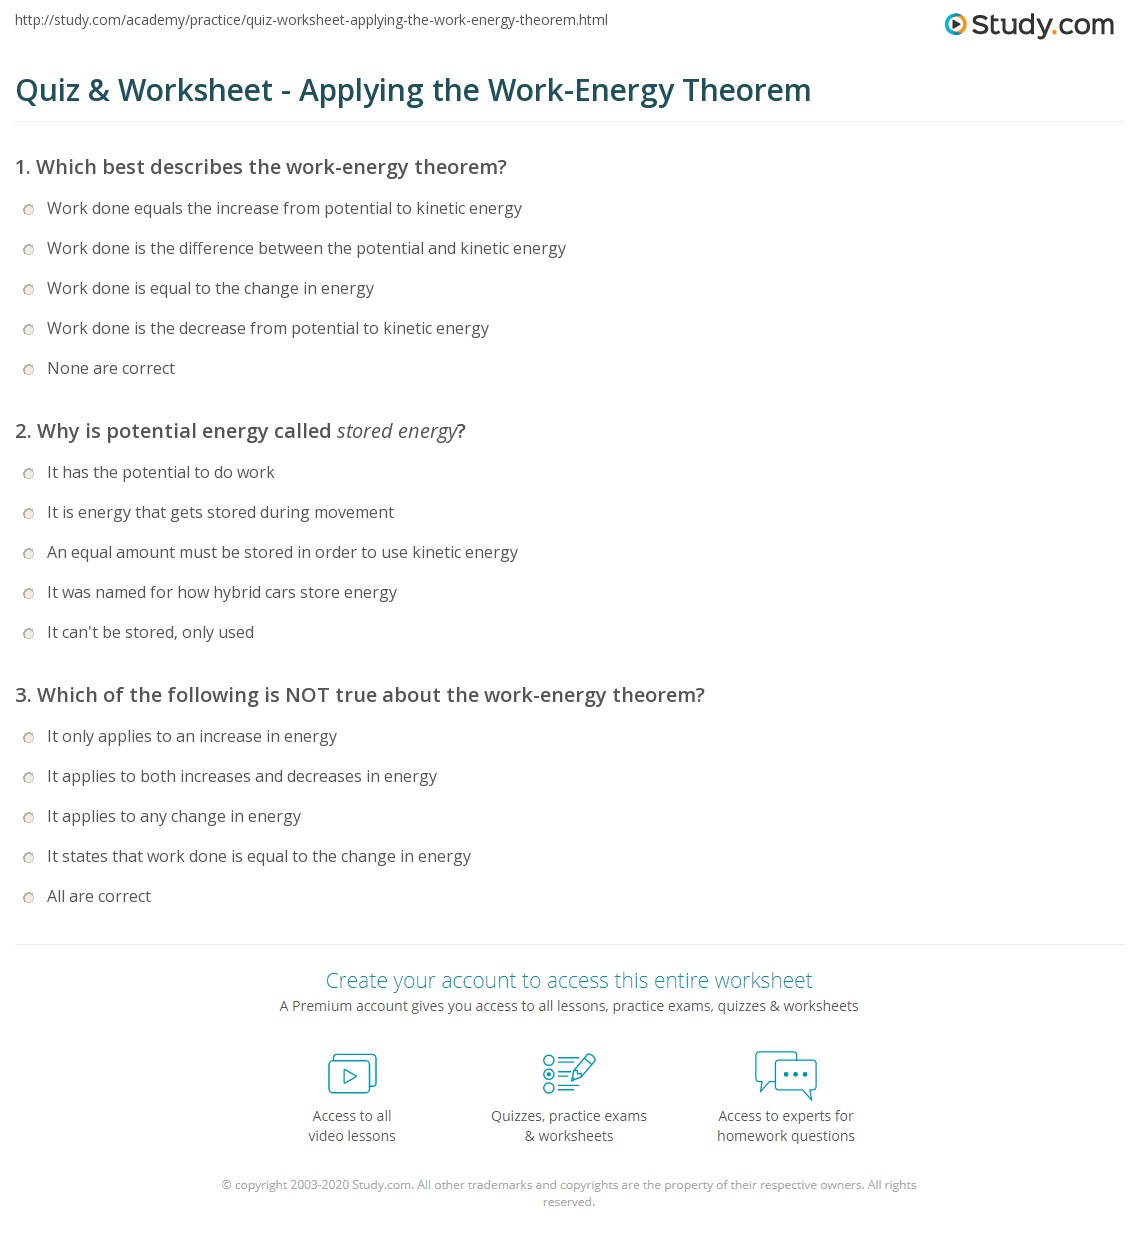 worksheet Energy Worksheets For 2nd Grade work power and energy worksheet free worksheets library download quiz w ksheet pply g k em study